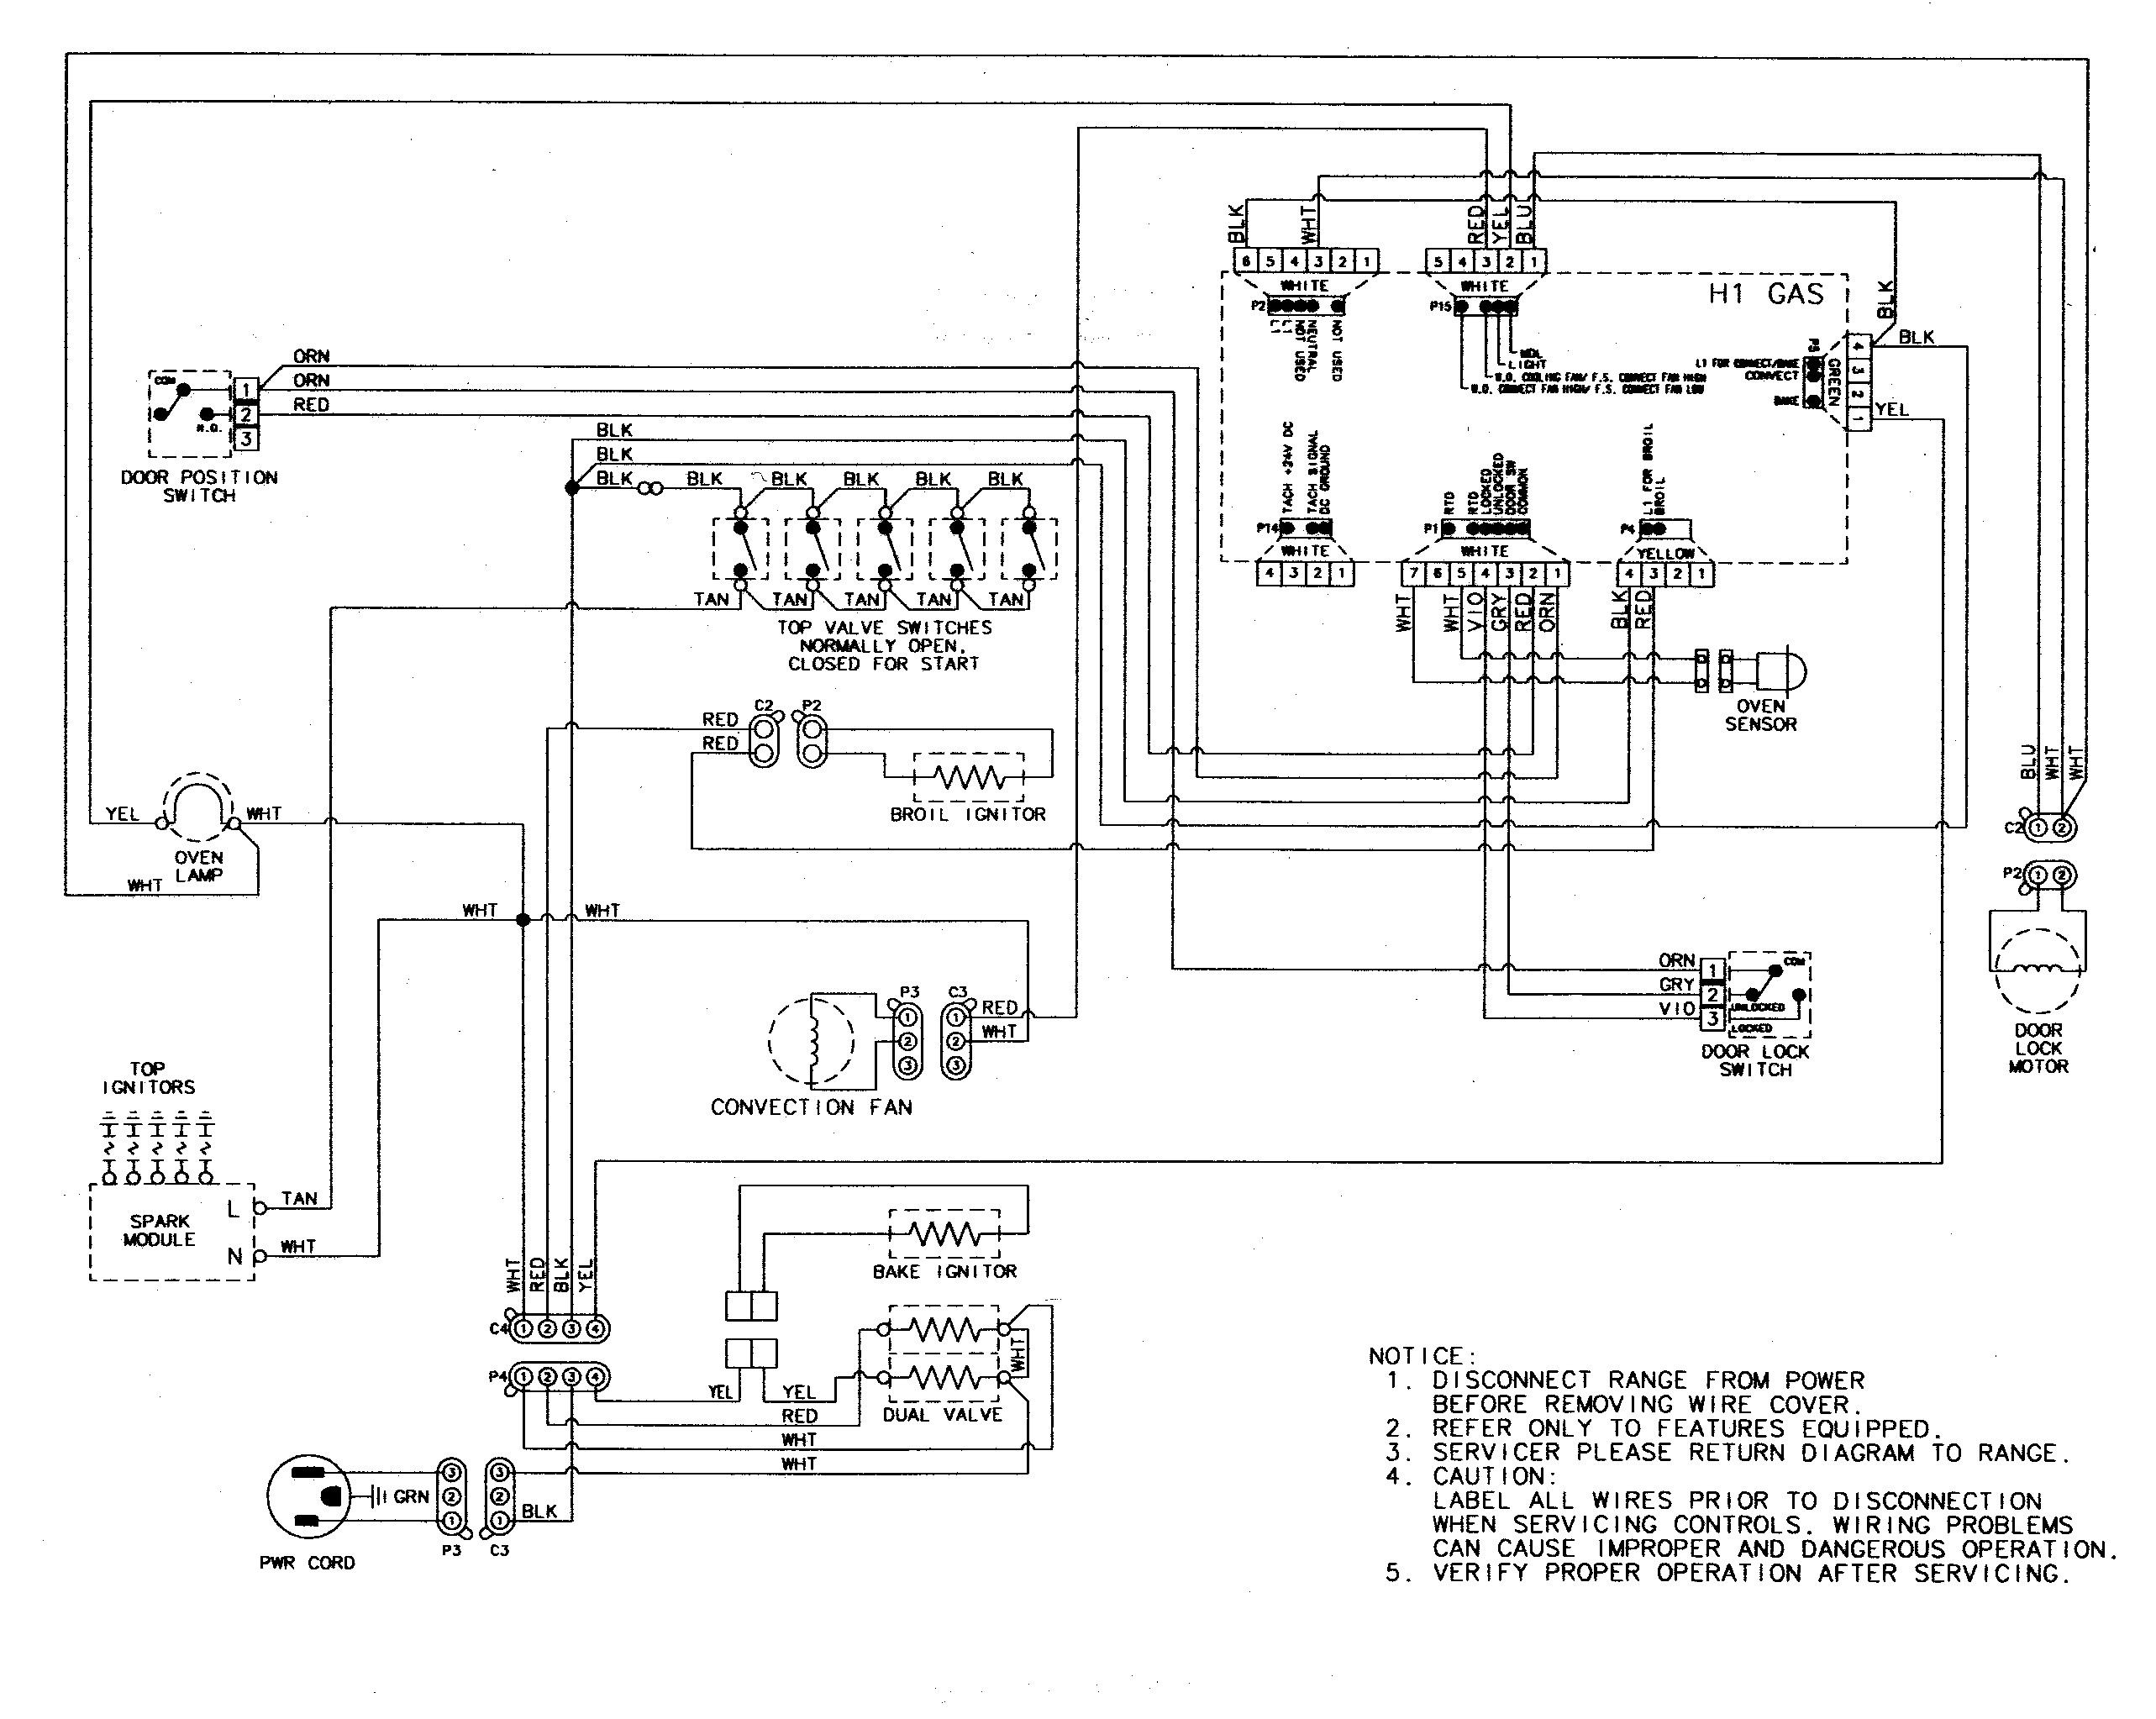 Amana thermostat wiring diagram illustration of wiring diagram amana dryer thermostat wiring furthermore nest thermostat wiring rh onzegroup co amana furnace blower wiring diagram heat pump thermostat wiring diagrams asfbconference2016 Images